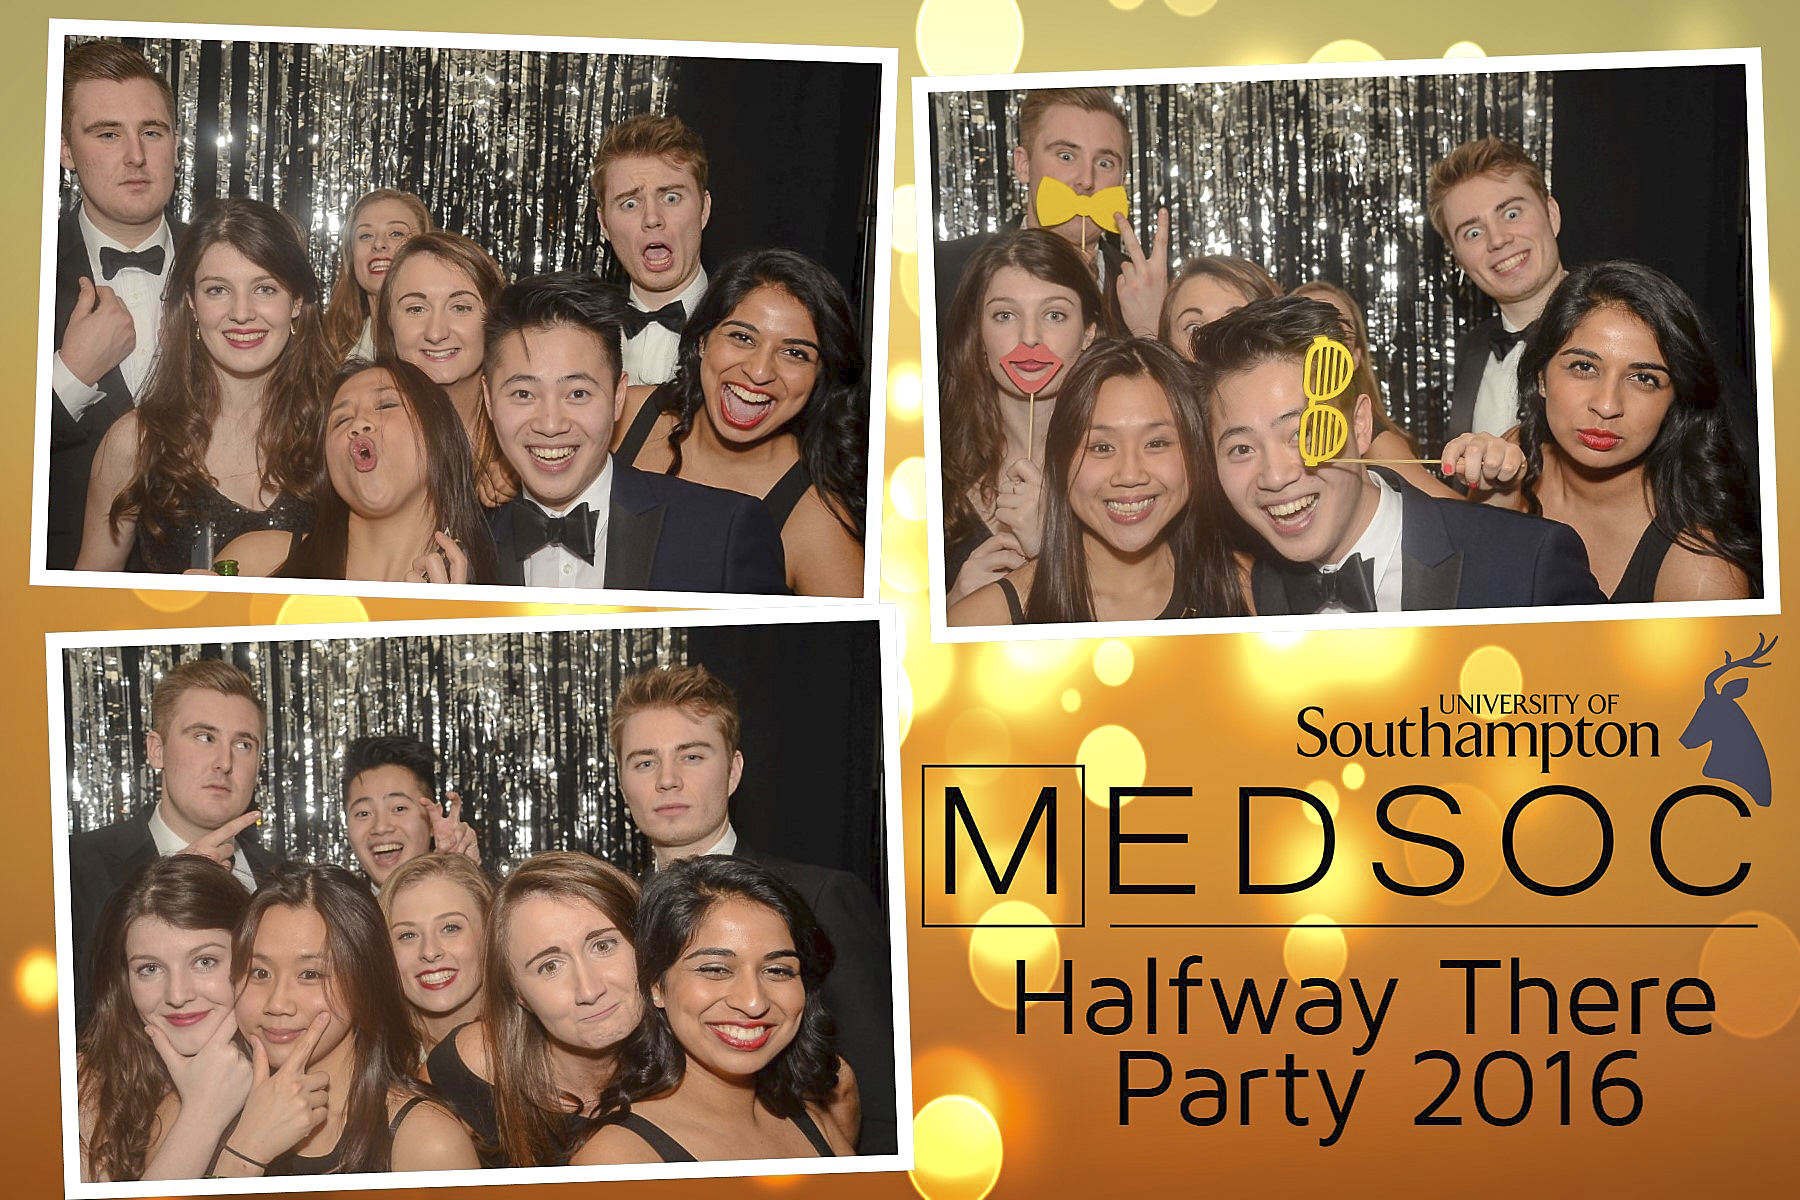 MedSoc Halfway There Party 2016 DS002921.jpg